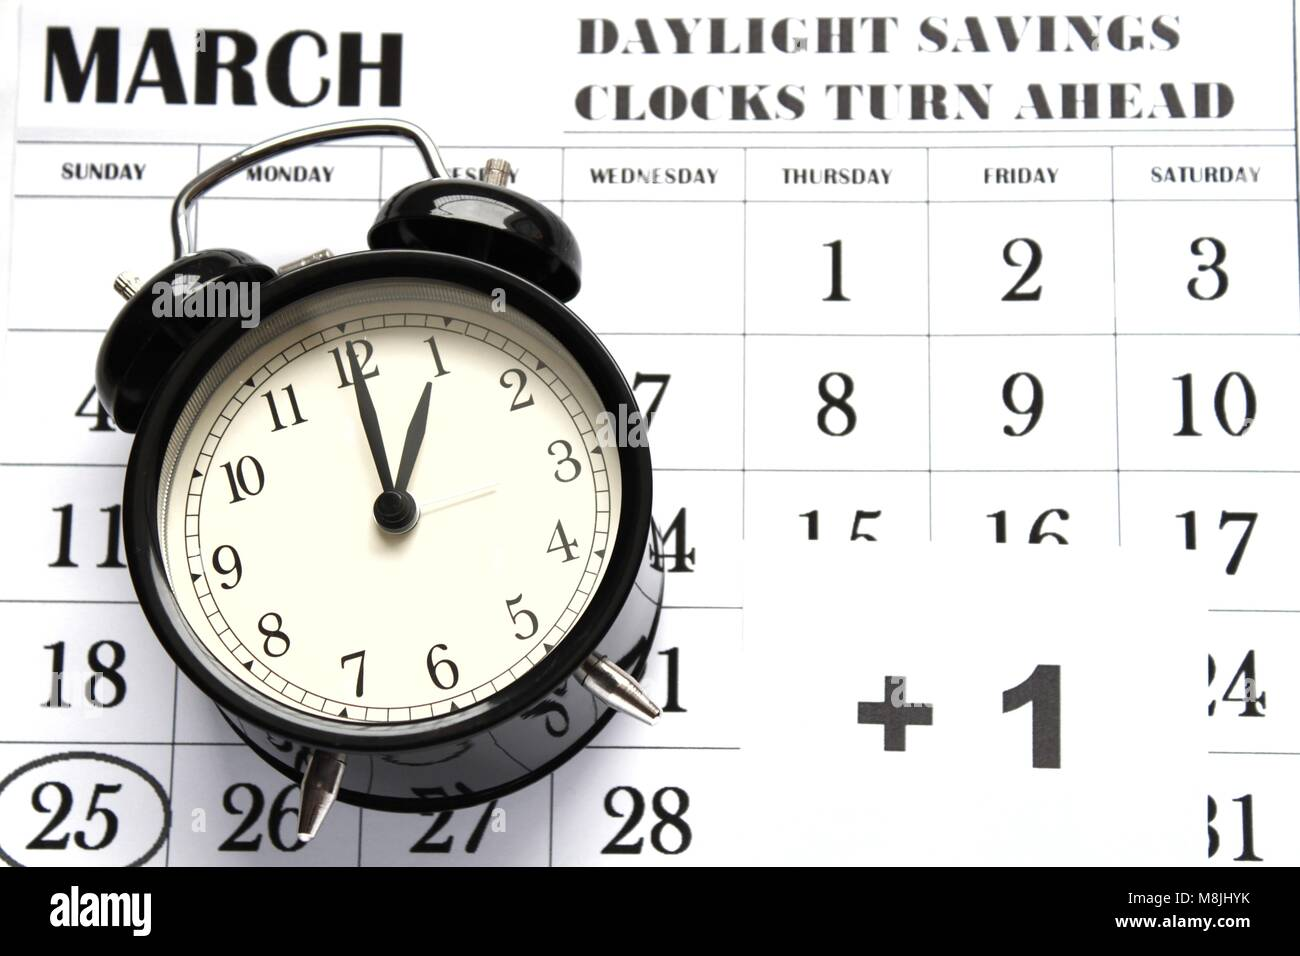 Daylight Savings Spring Forward sunday at 1:00 a.m. March 25 date indicated in the calendar. - Stock Image